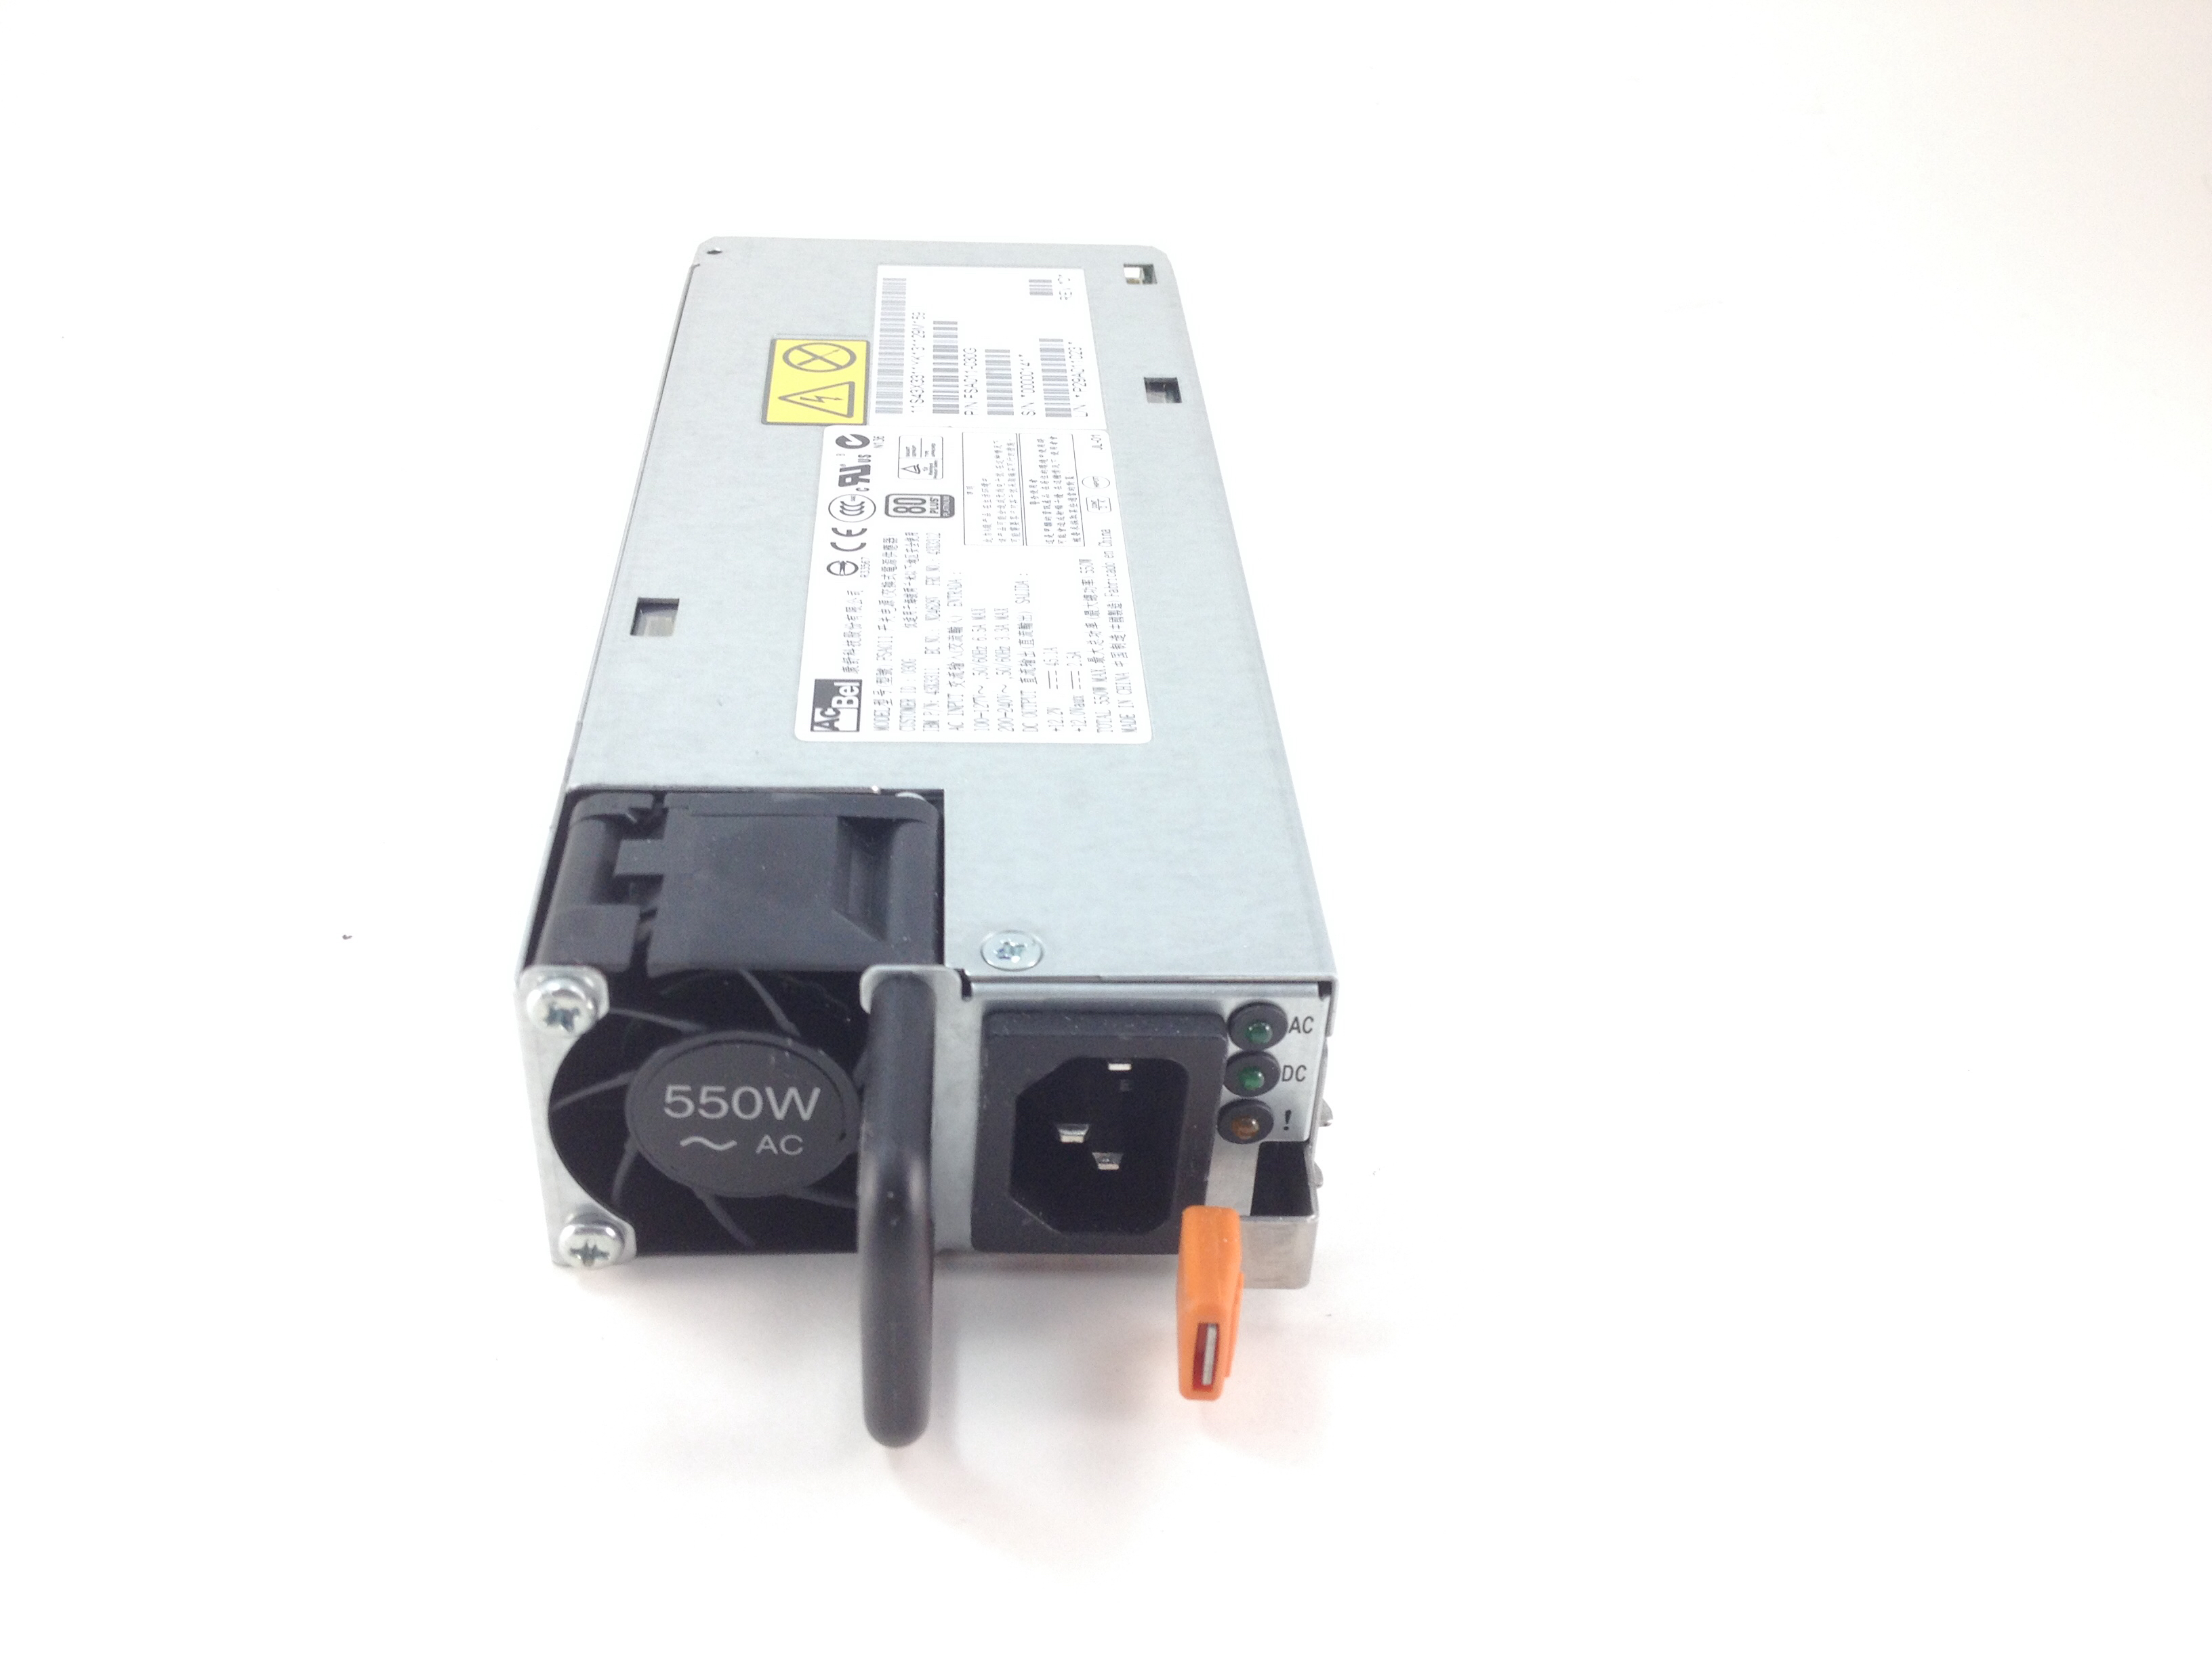 IBM X3650 M4 550W 80 Plus Platinum Power Supply (43X3312)